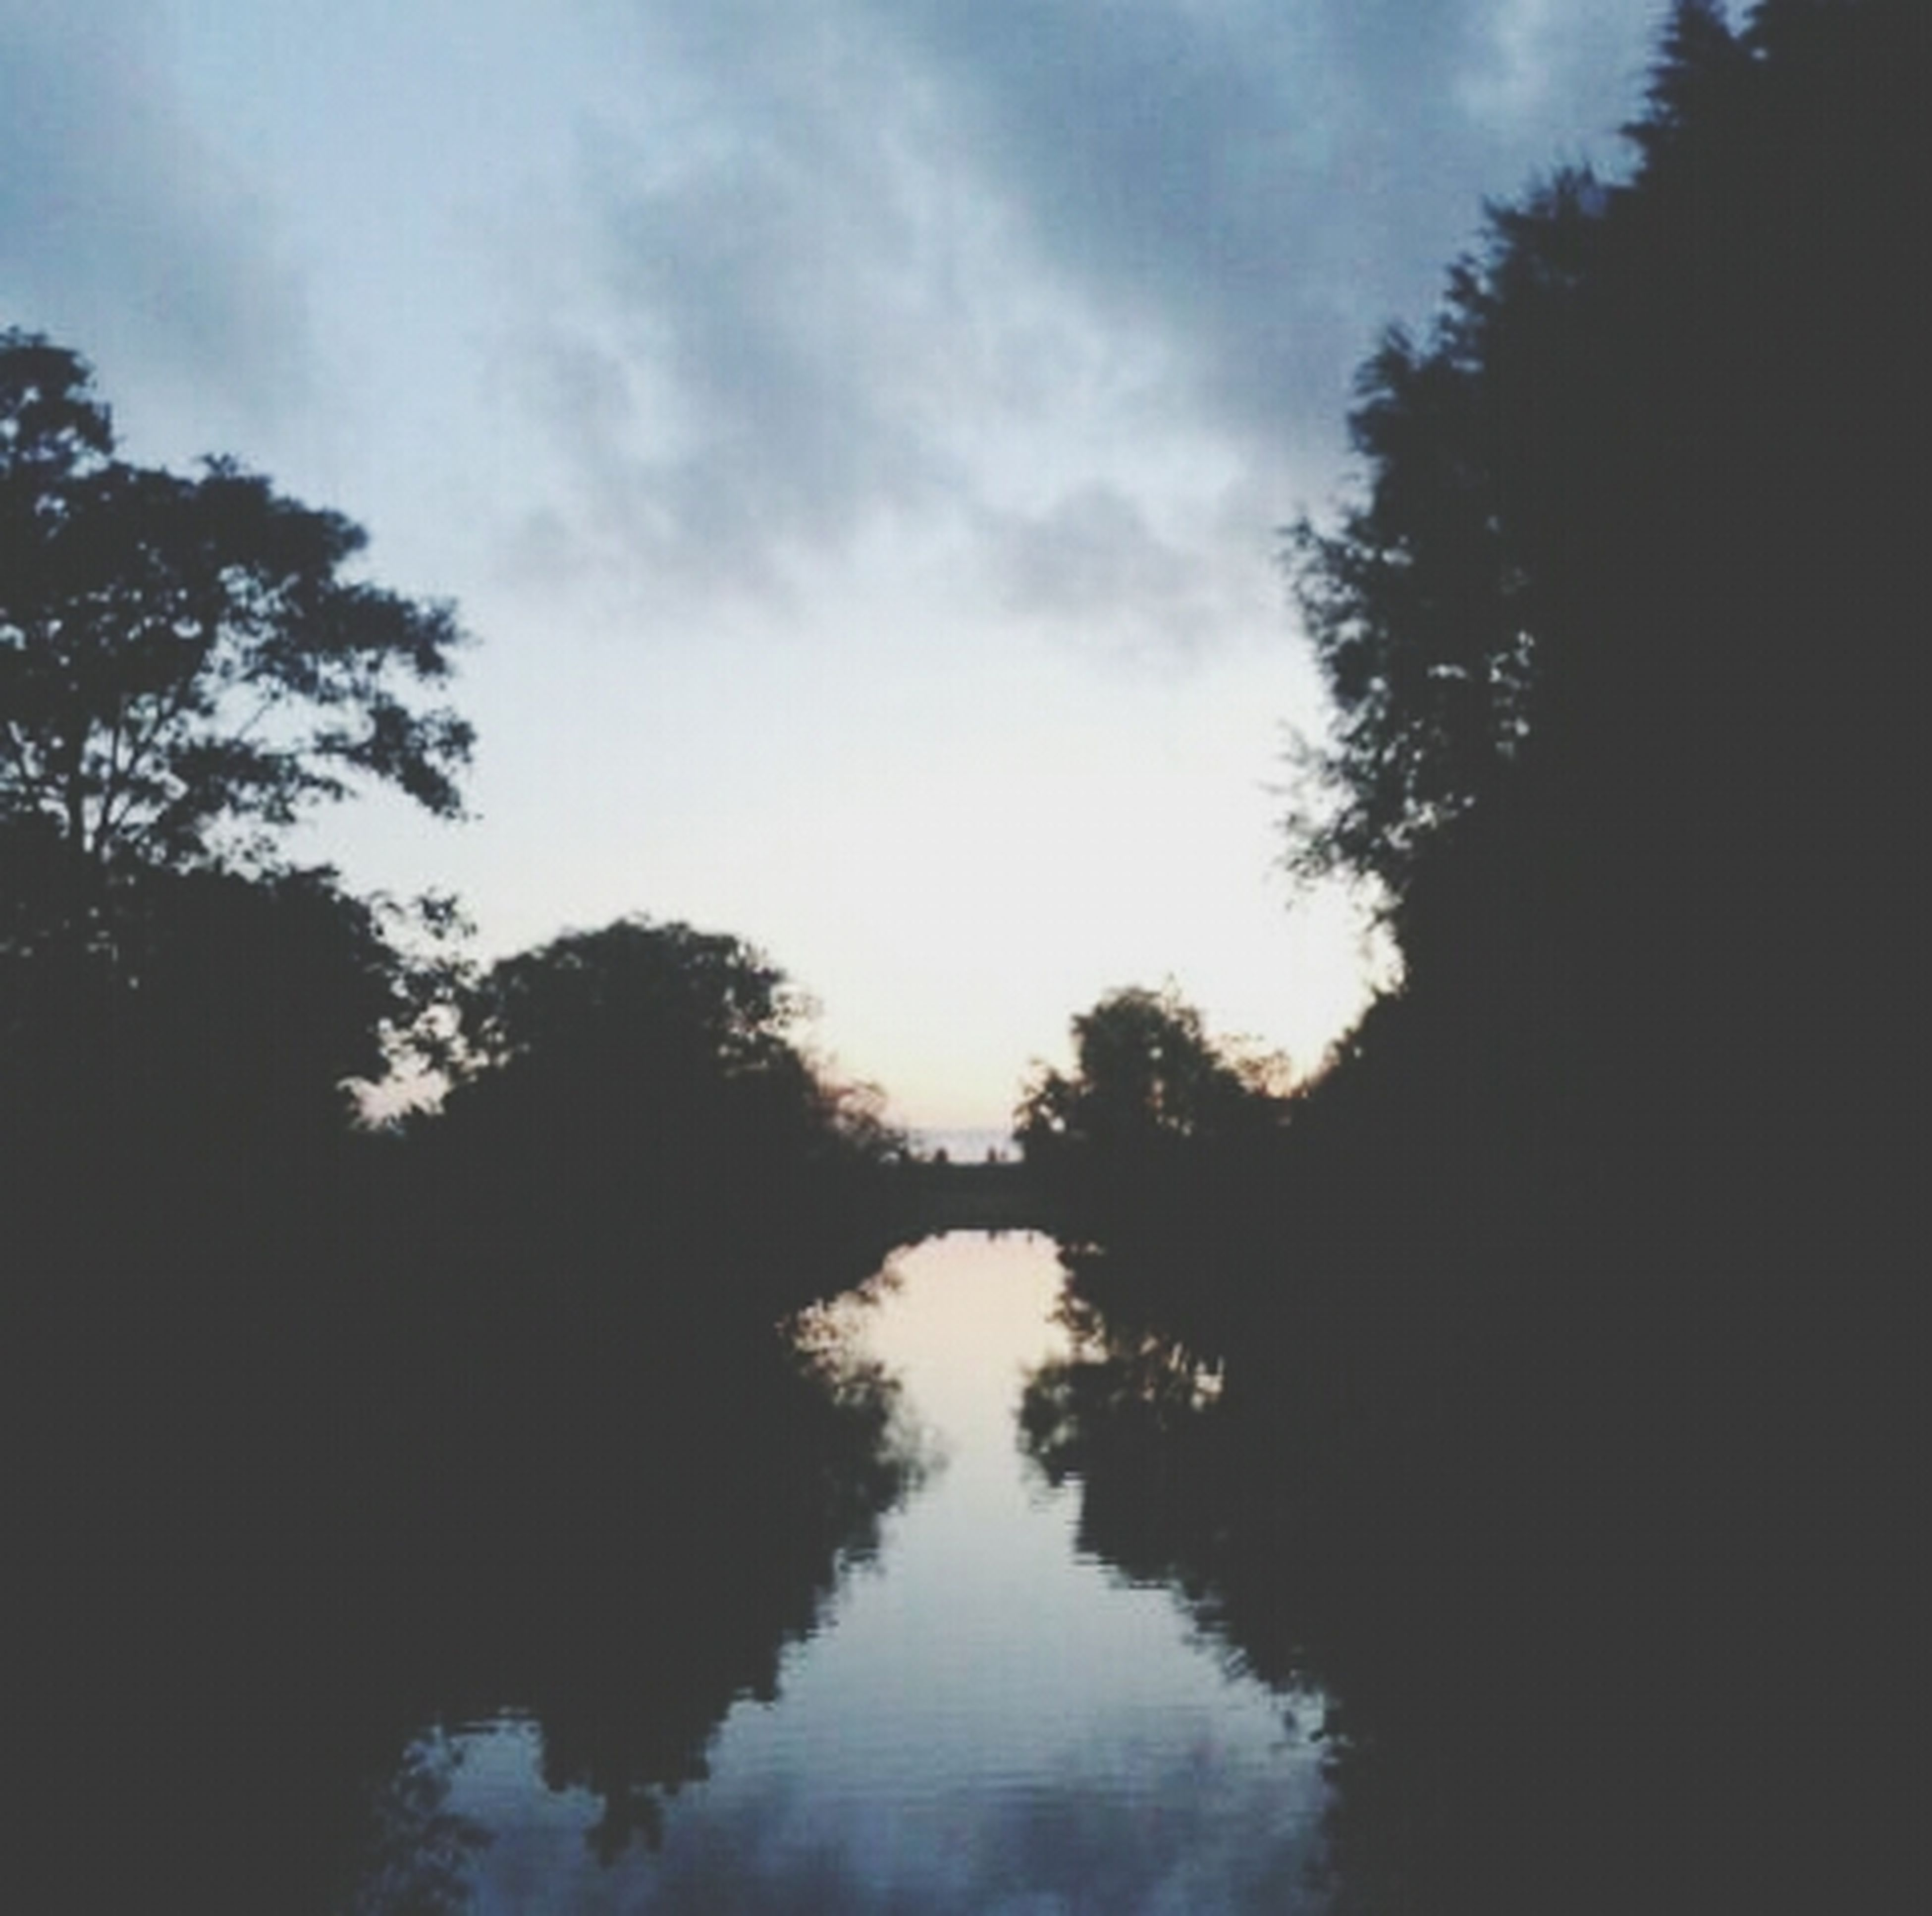 tree, sky, water, reflection, tranquility, tranquil scene, silhouette, lake, beauty in nature, scenics, waterfront, cloud - sky, nature, sunset, idyllic, cloud, outdoors, river, dusk, growth